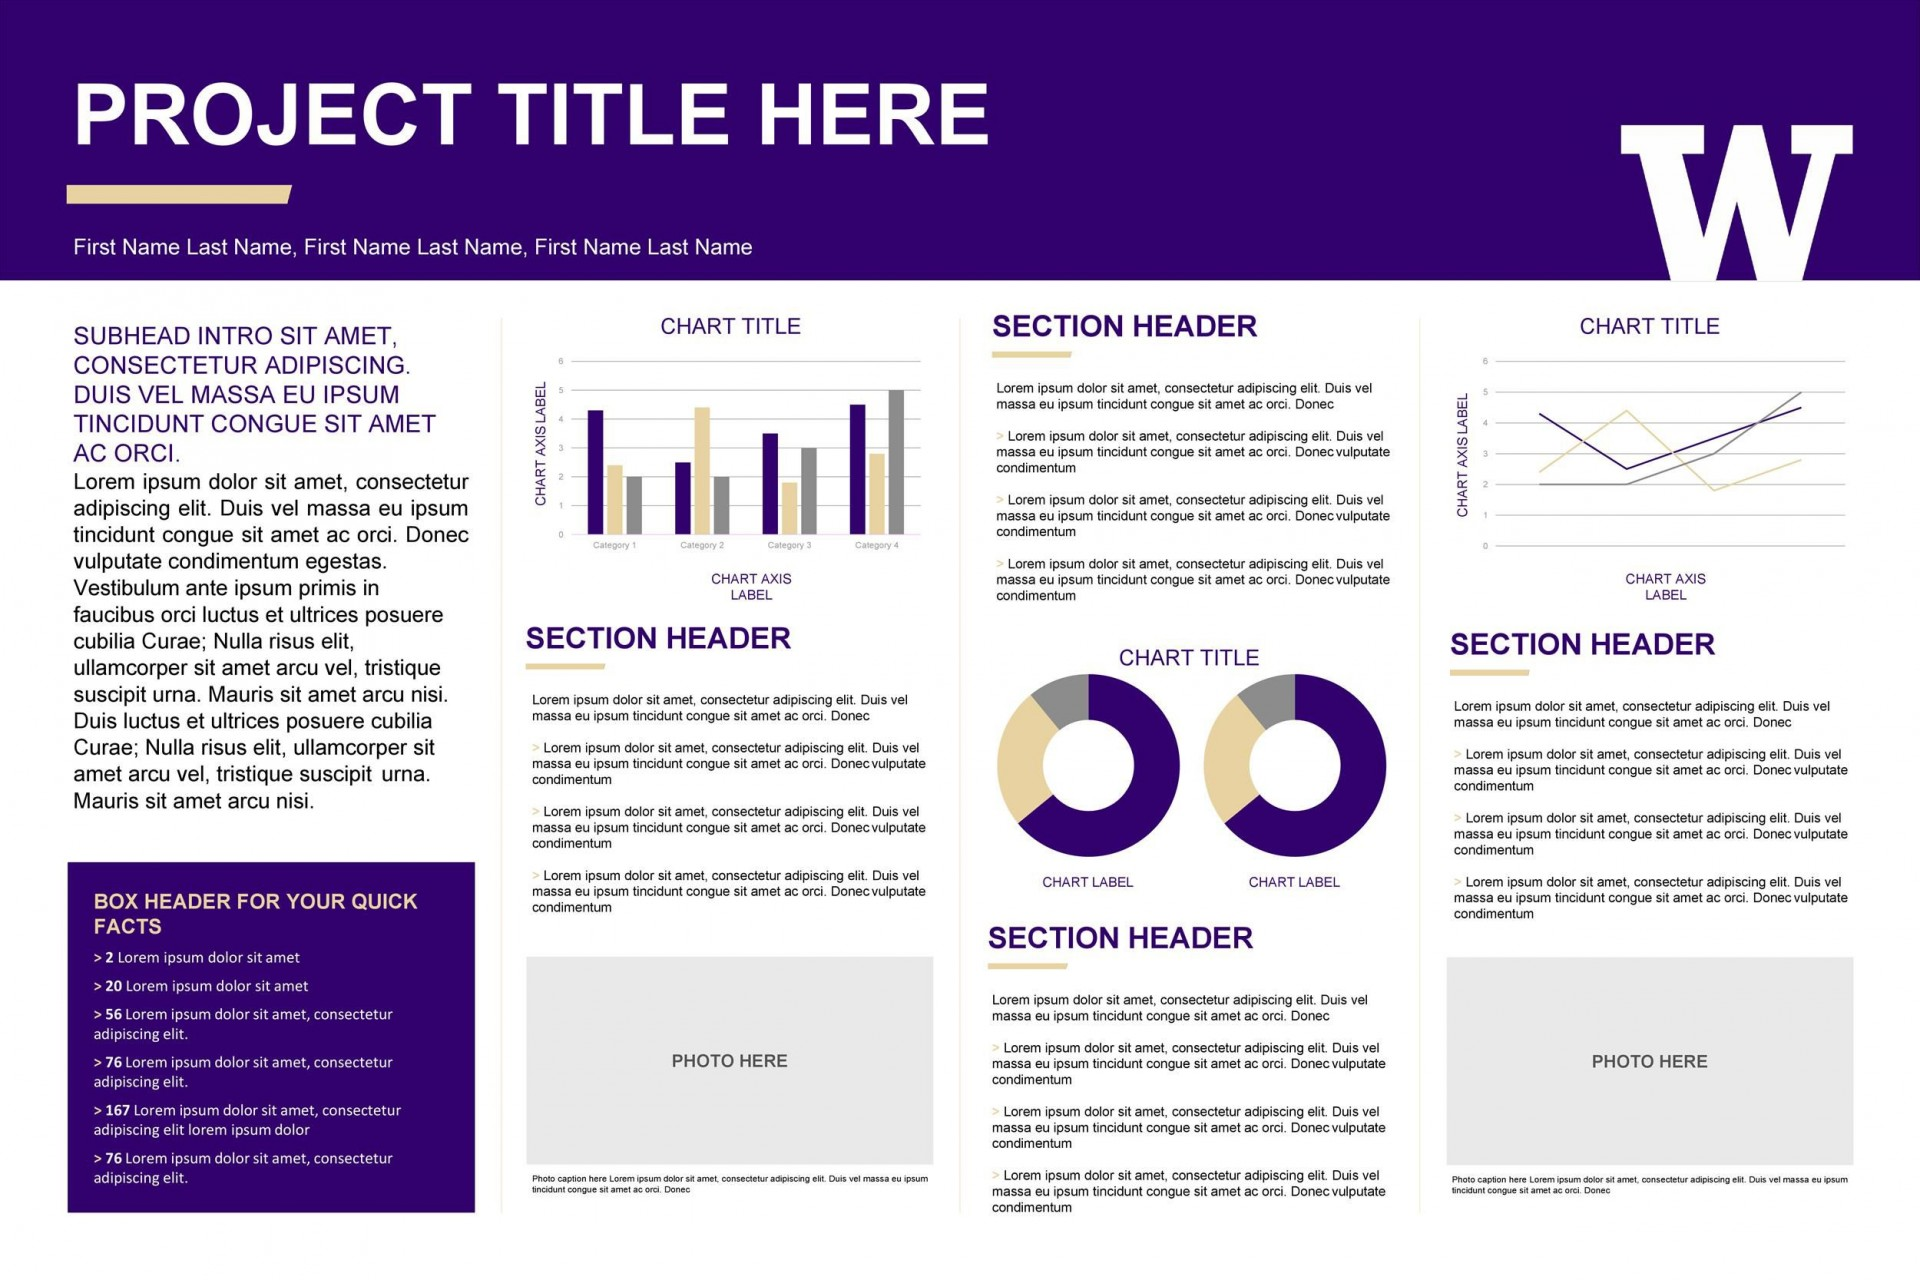 006 Formidable Scientific Poster Design Template Free Download 1920